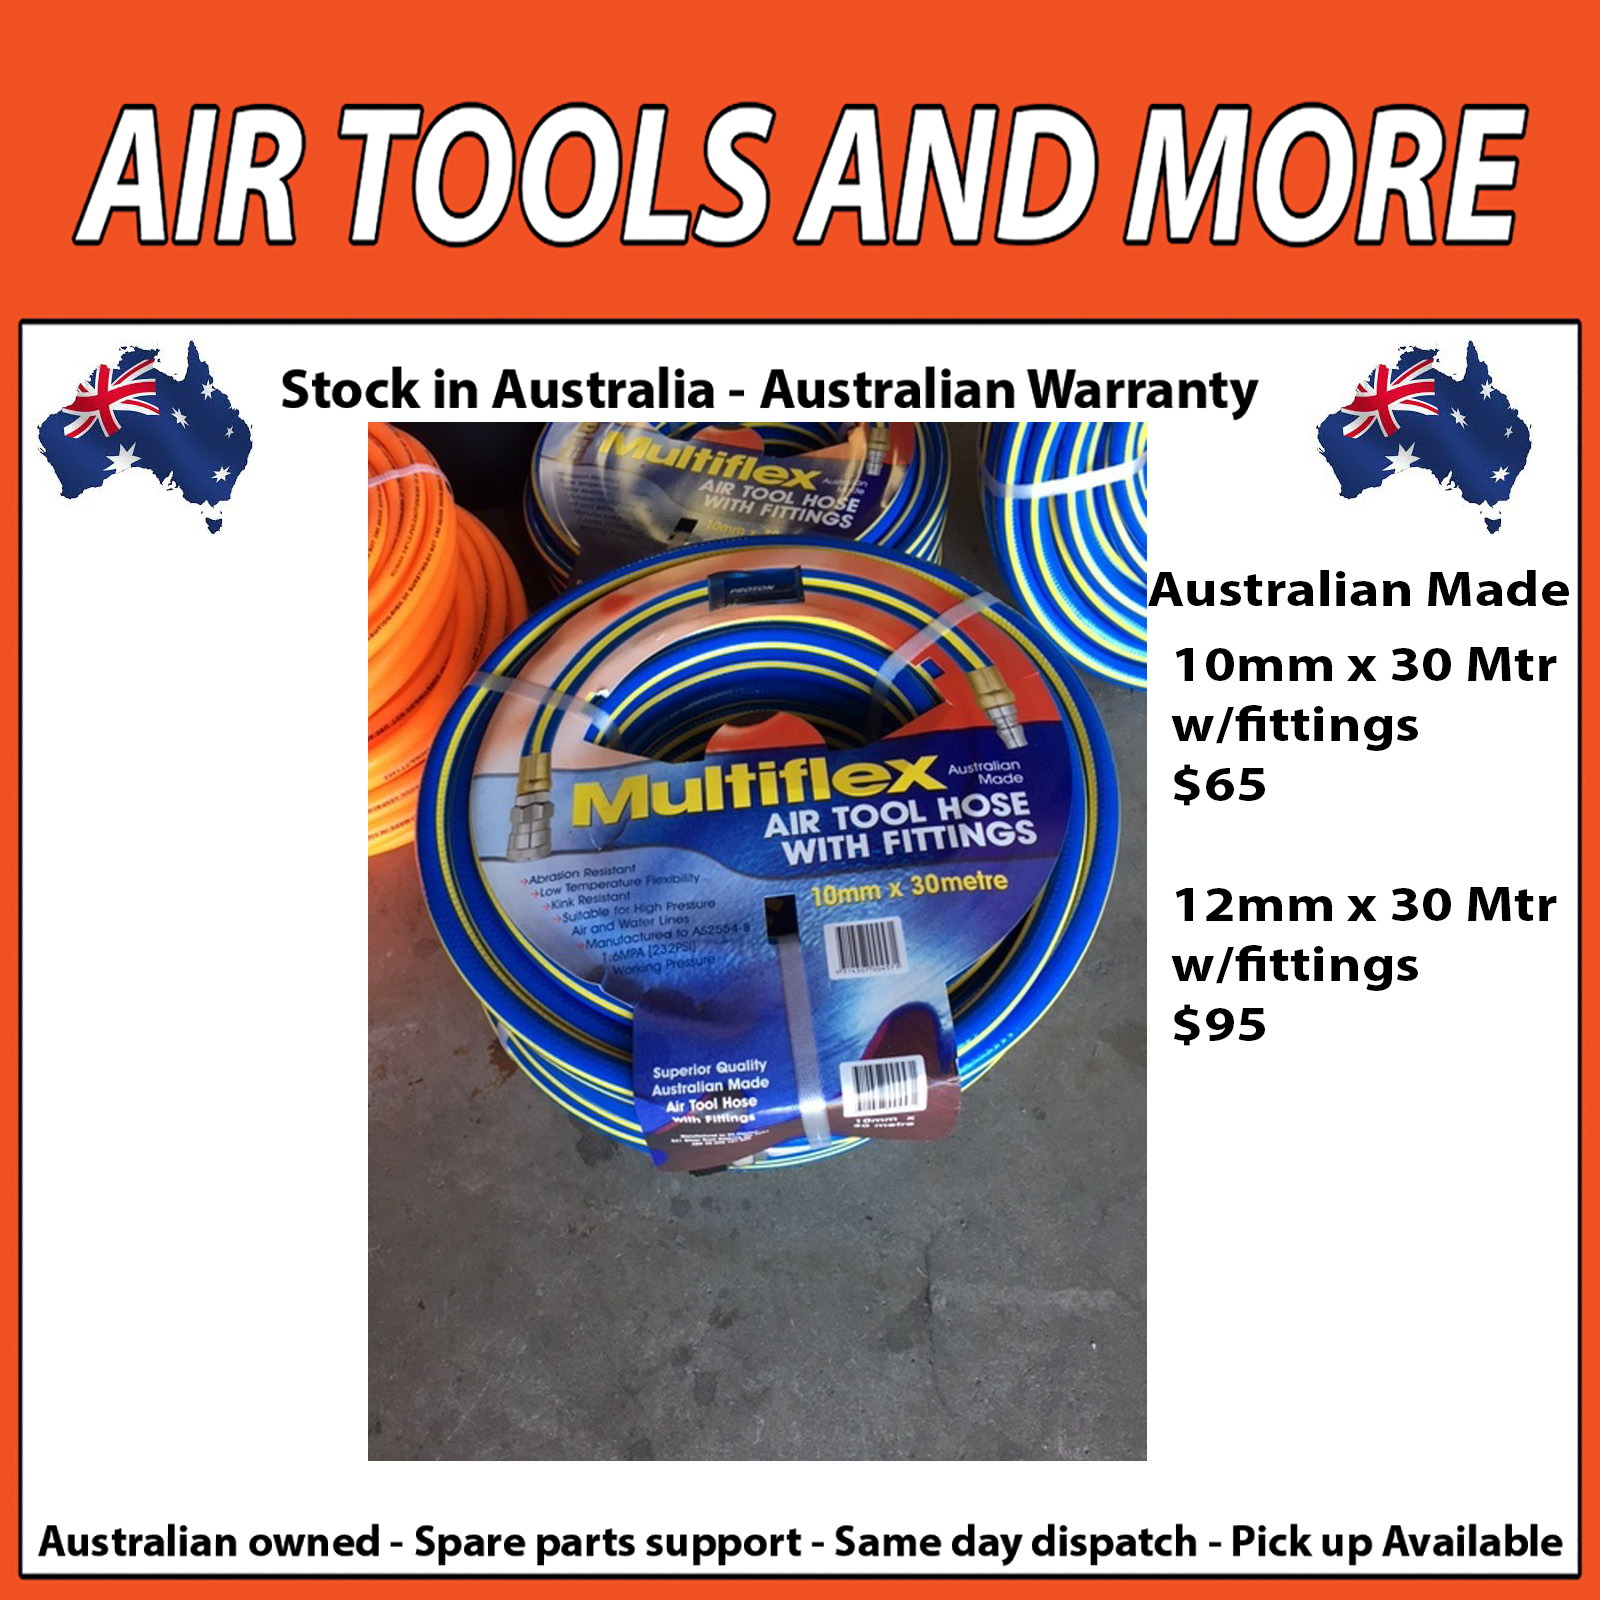 http://airtoolsandmore.com.au/tools/12mm-30-meter-air-hose-wfittings-p-617.html